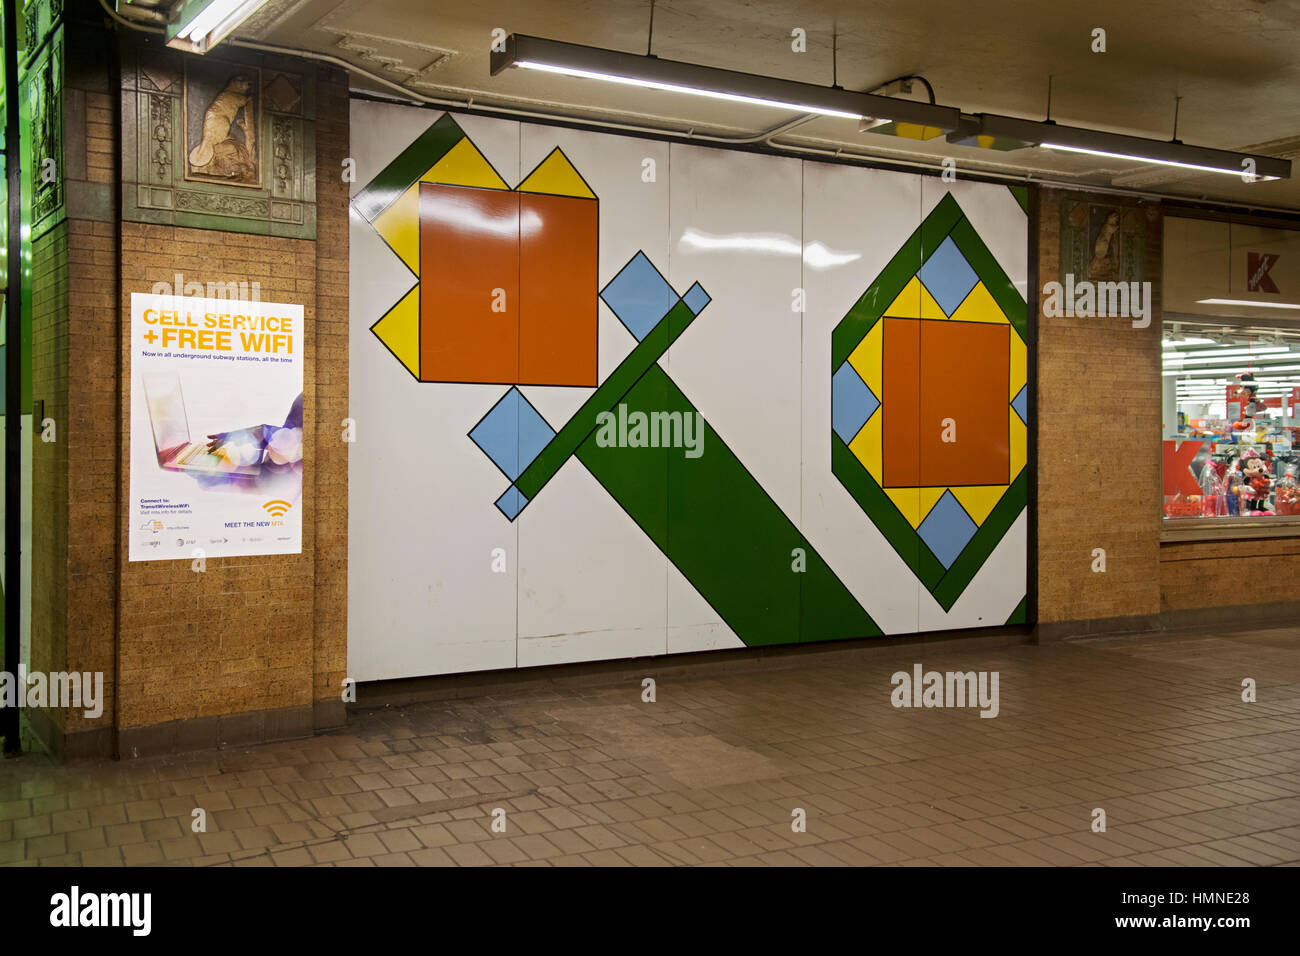 Subway art at the Astor place Station on the 6 train of the Lexington Avenue line in Manhattan, New York City. - Stock Image